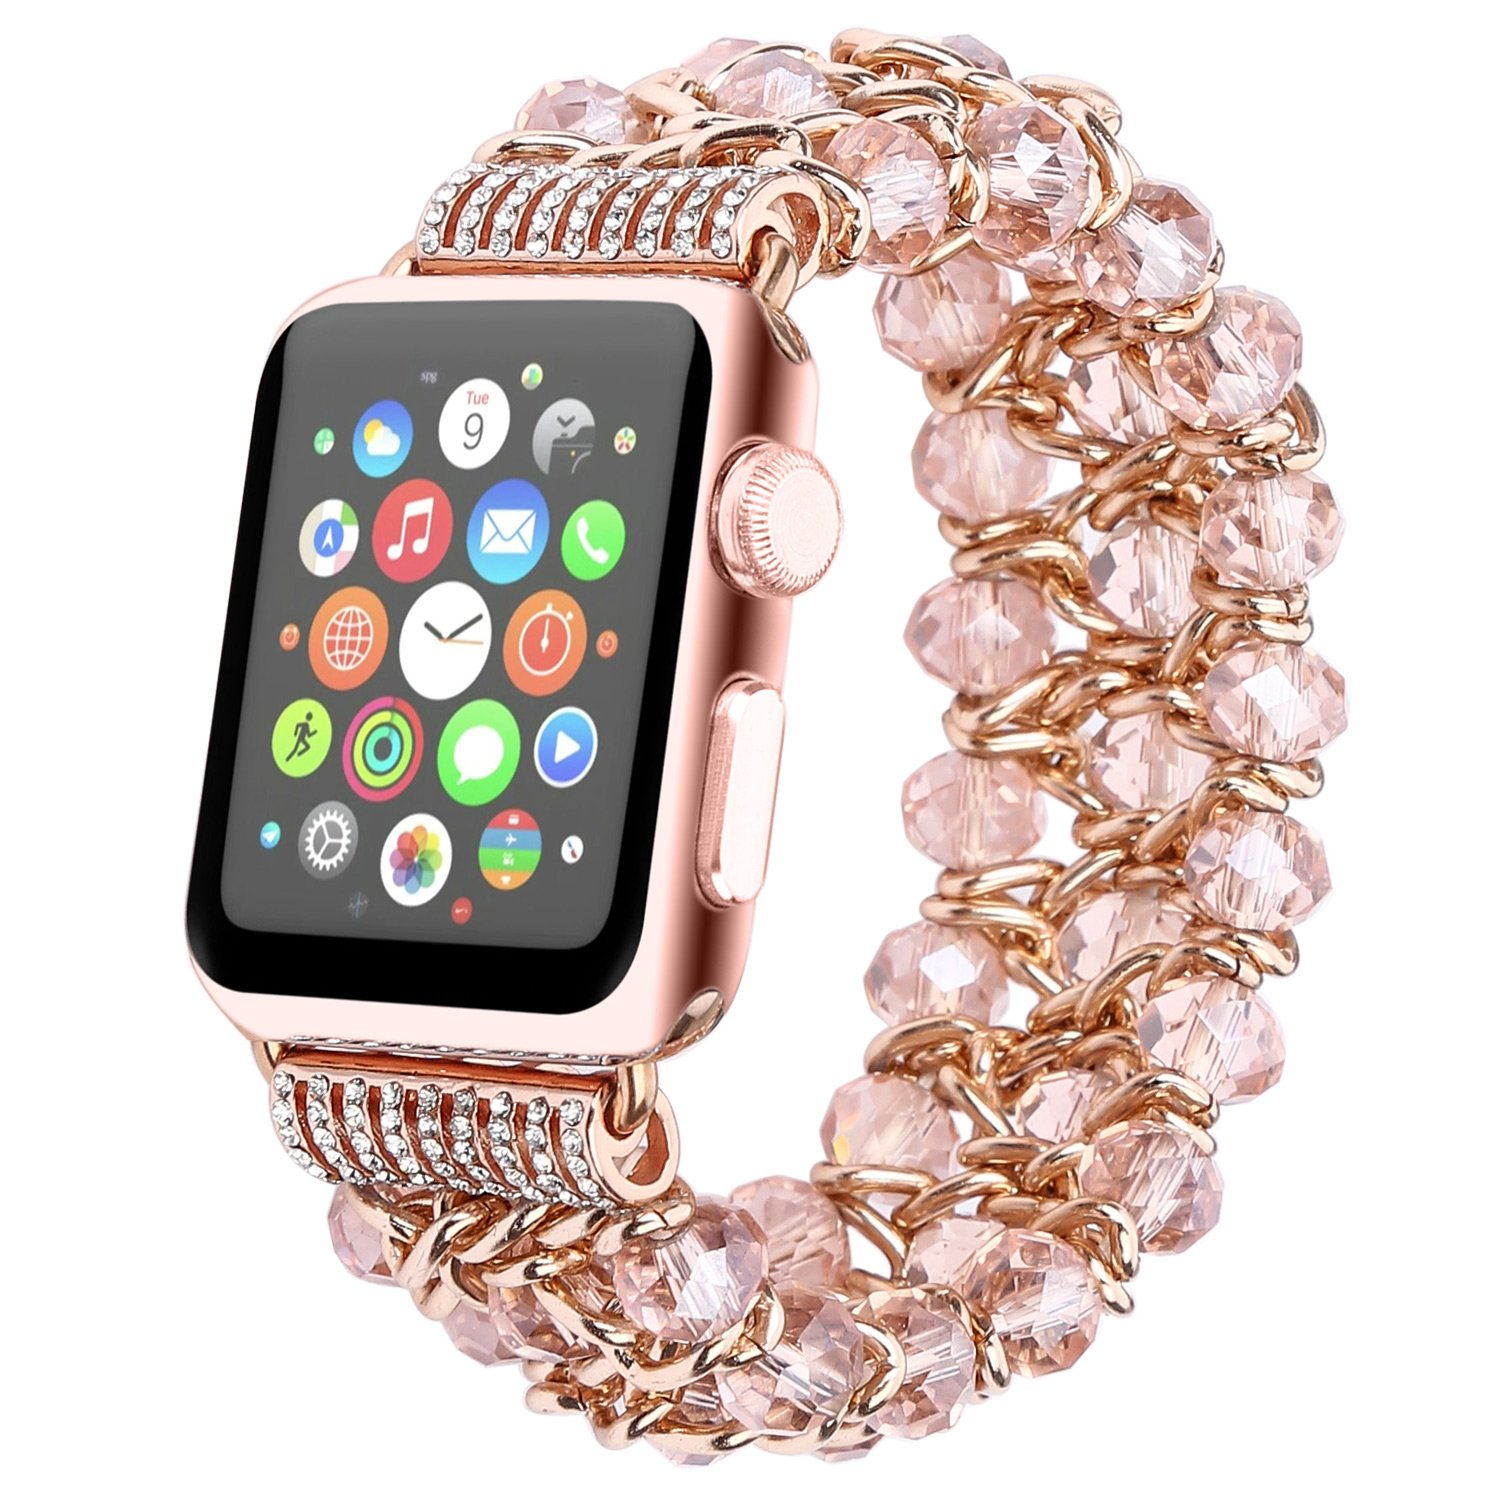 Fohuas for Apple Watch Band 38mm,Fashion Crystal Beads Iwatch Bracelet with Metal Chain Elastic Stretch Women Girls Replacement Strap for iWatch Series 3/2 / 1, Sports, Edition, Hemes, Nike+, Pink